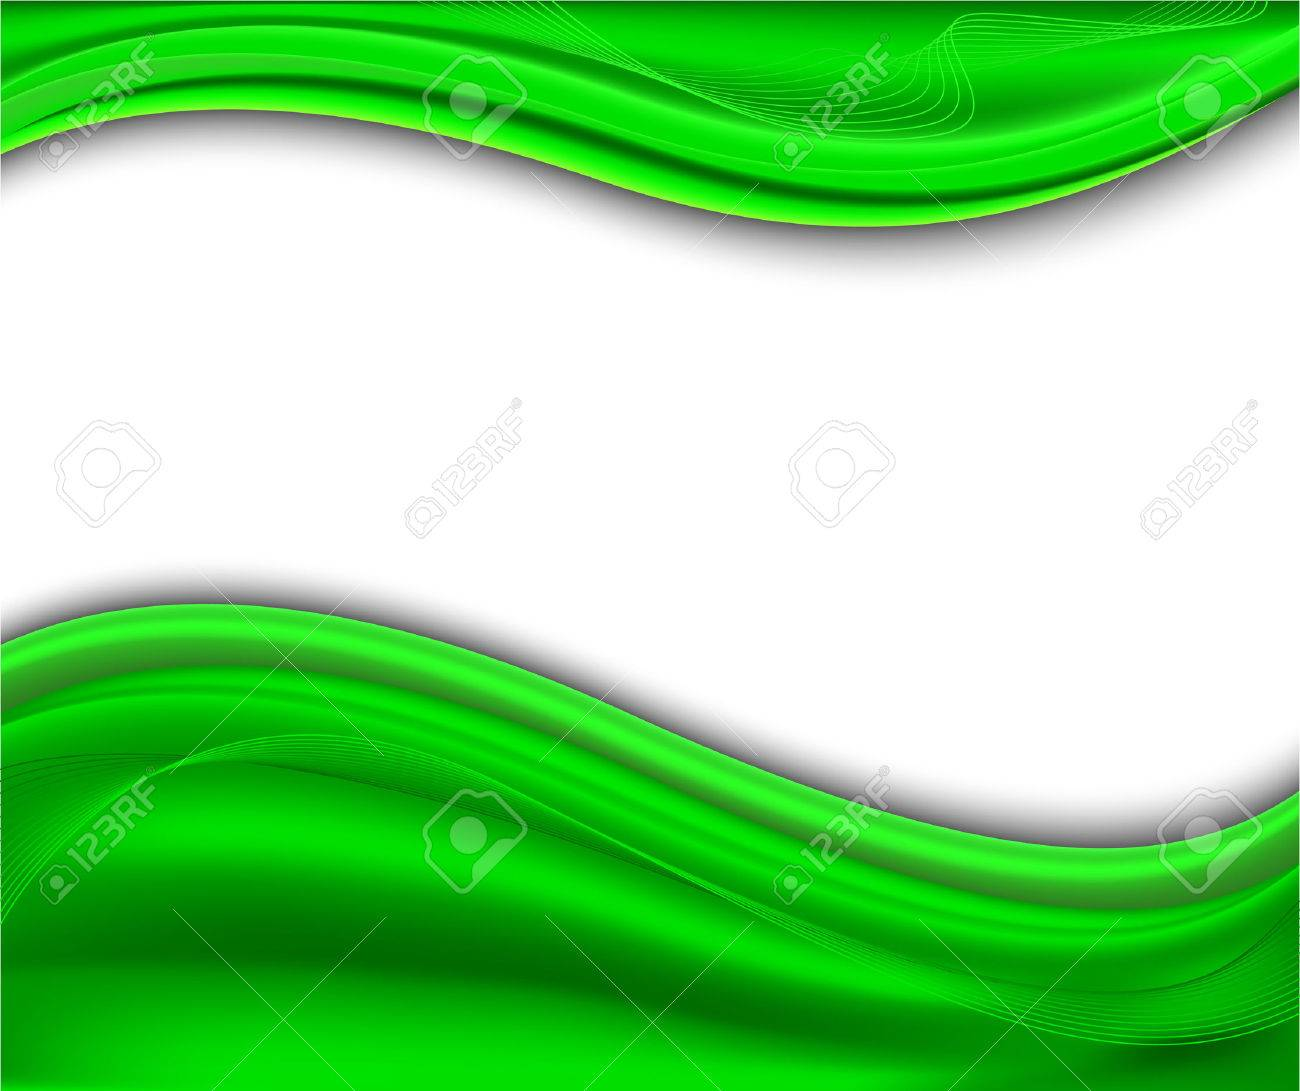 Abstract green background - wave; clip-art Stock Vector - 6378677